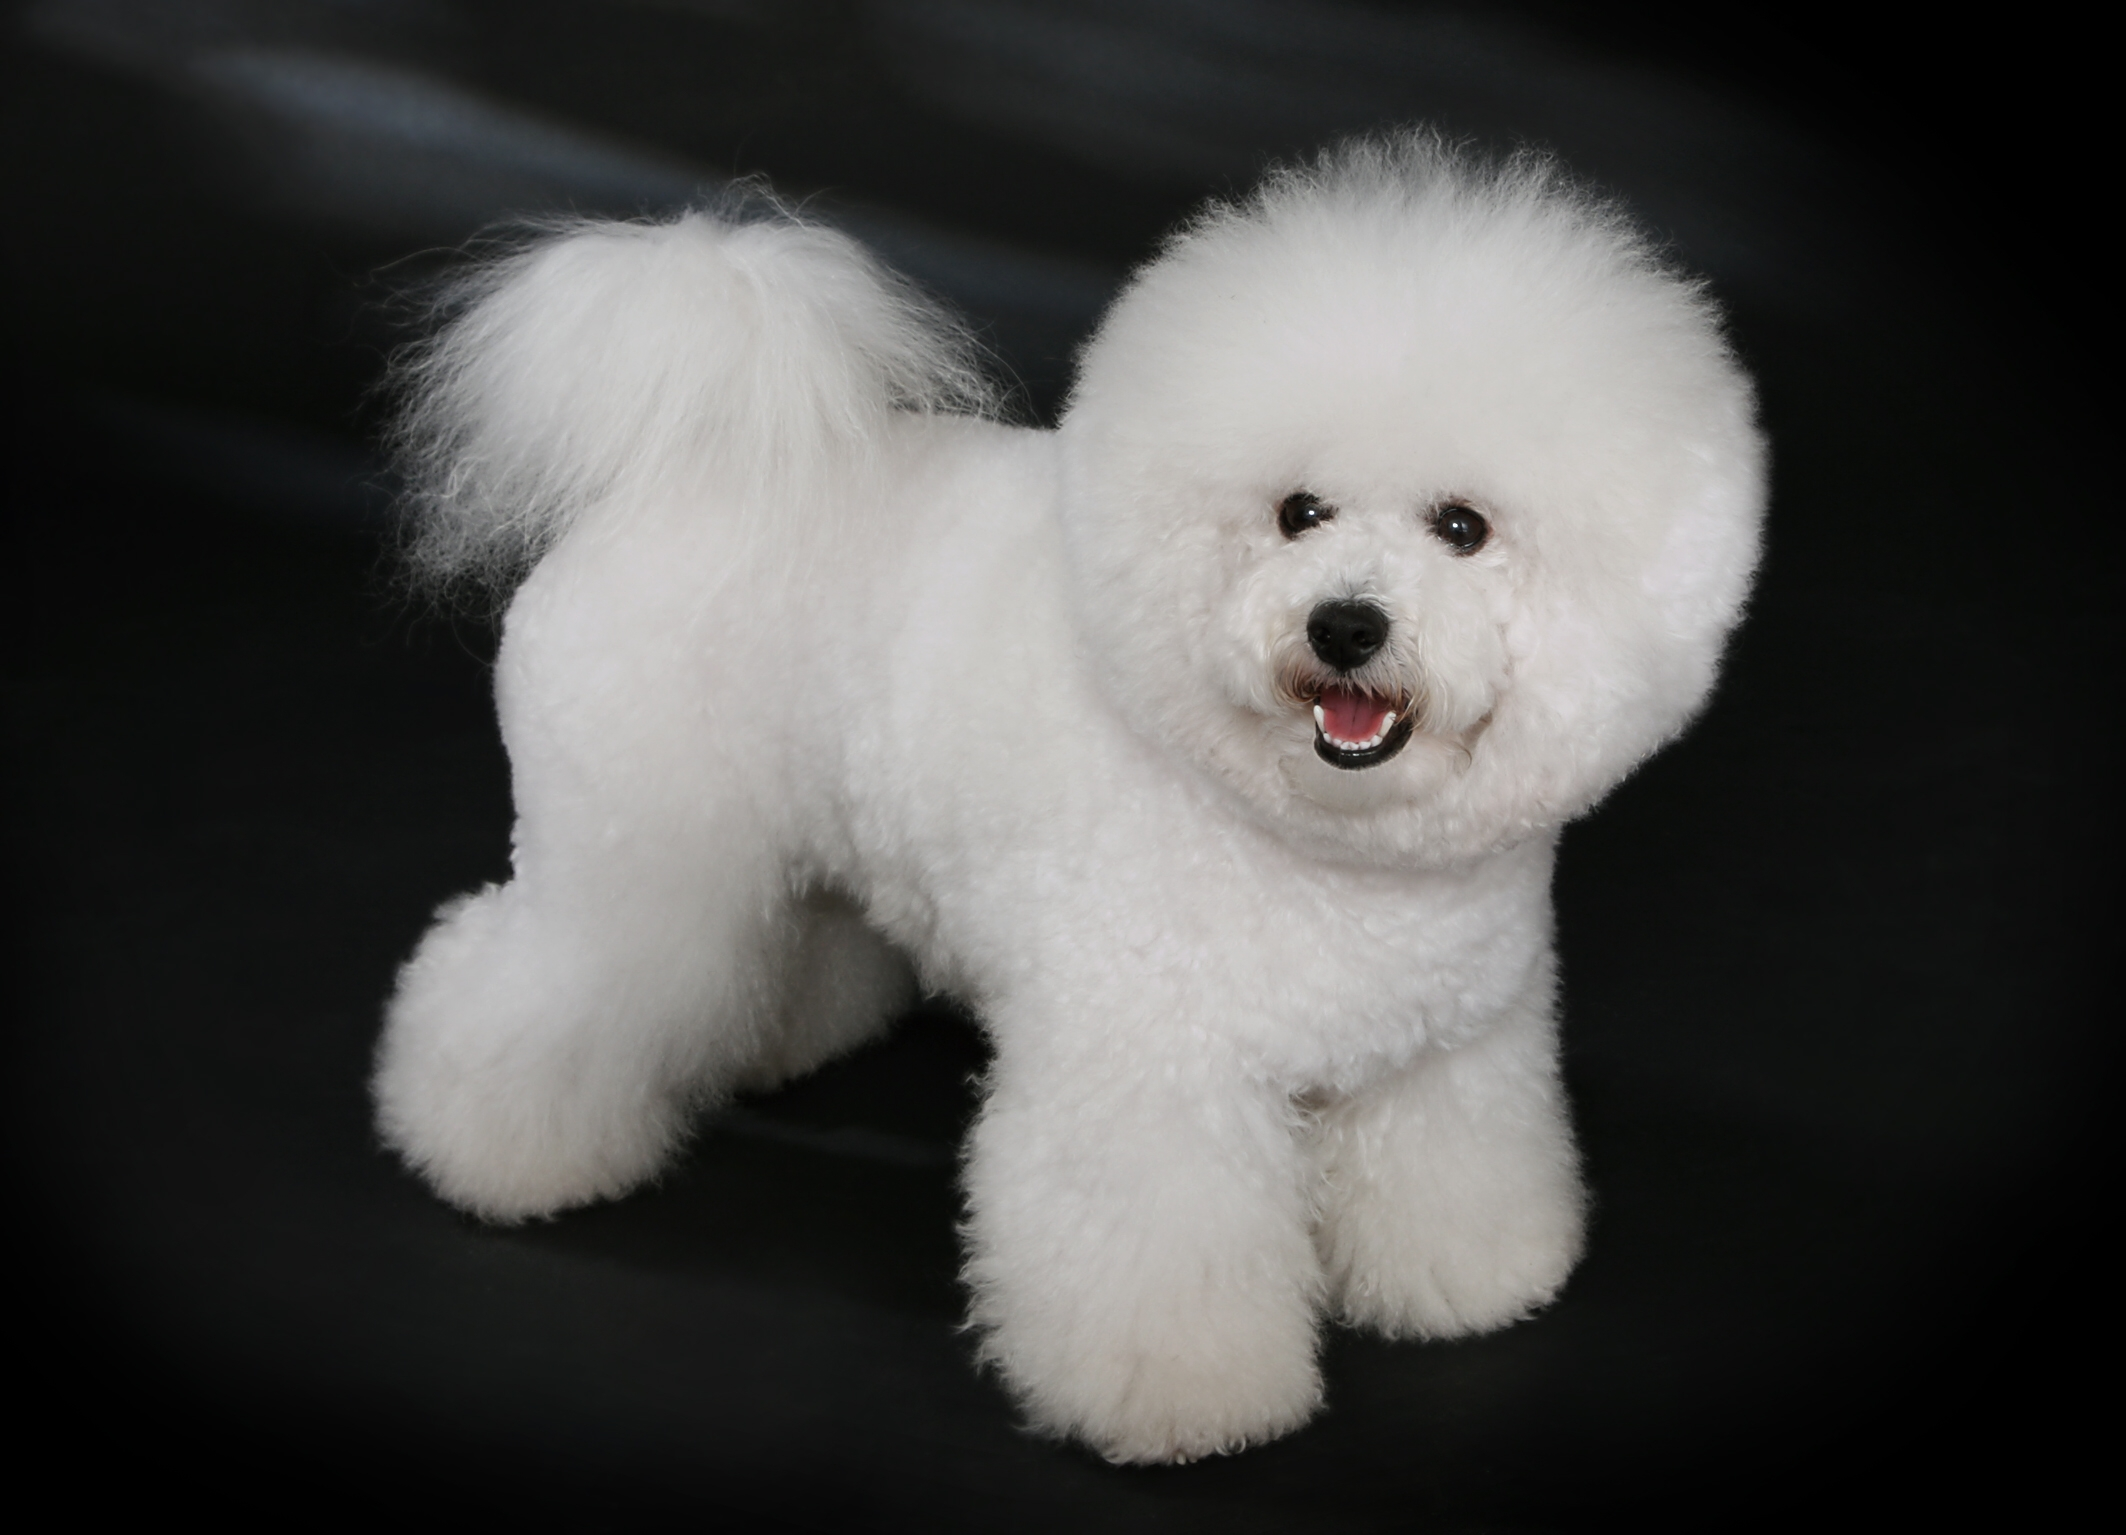 Bichon Frisé Teddy Bear Puppy